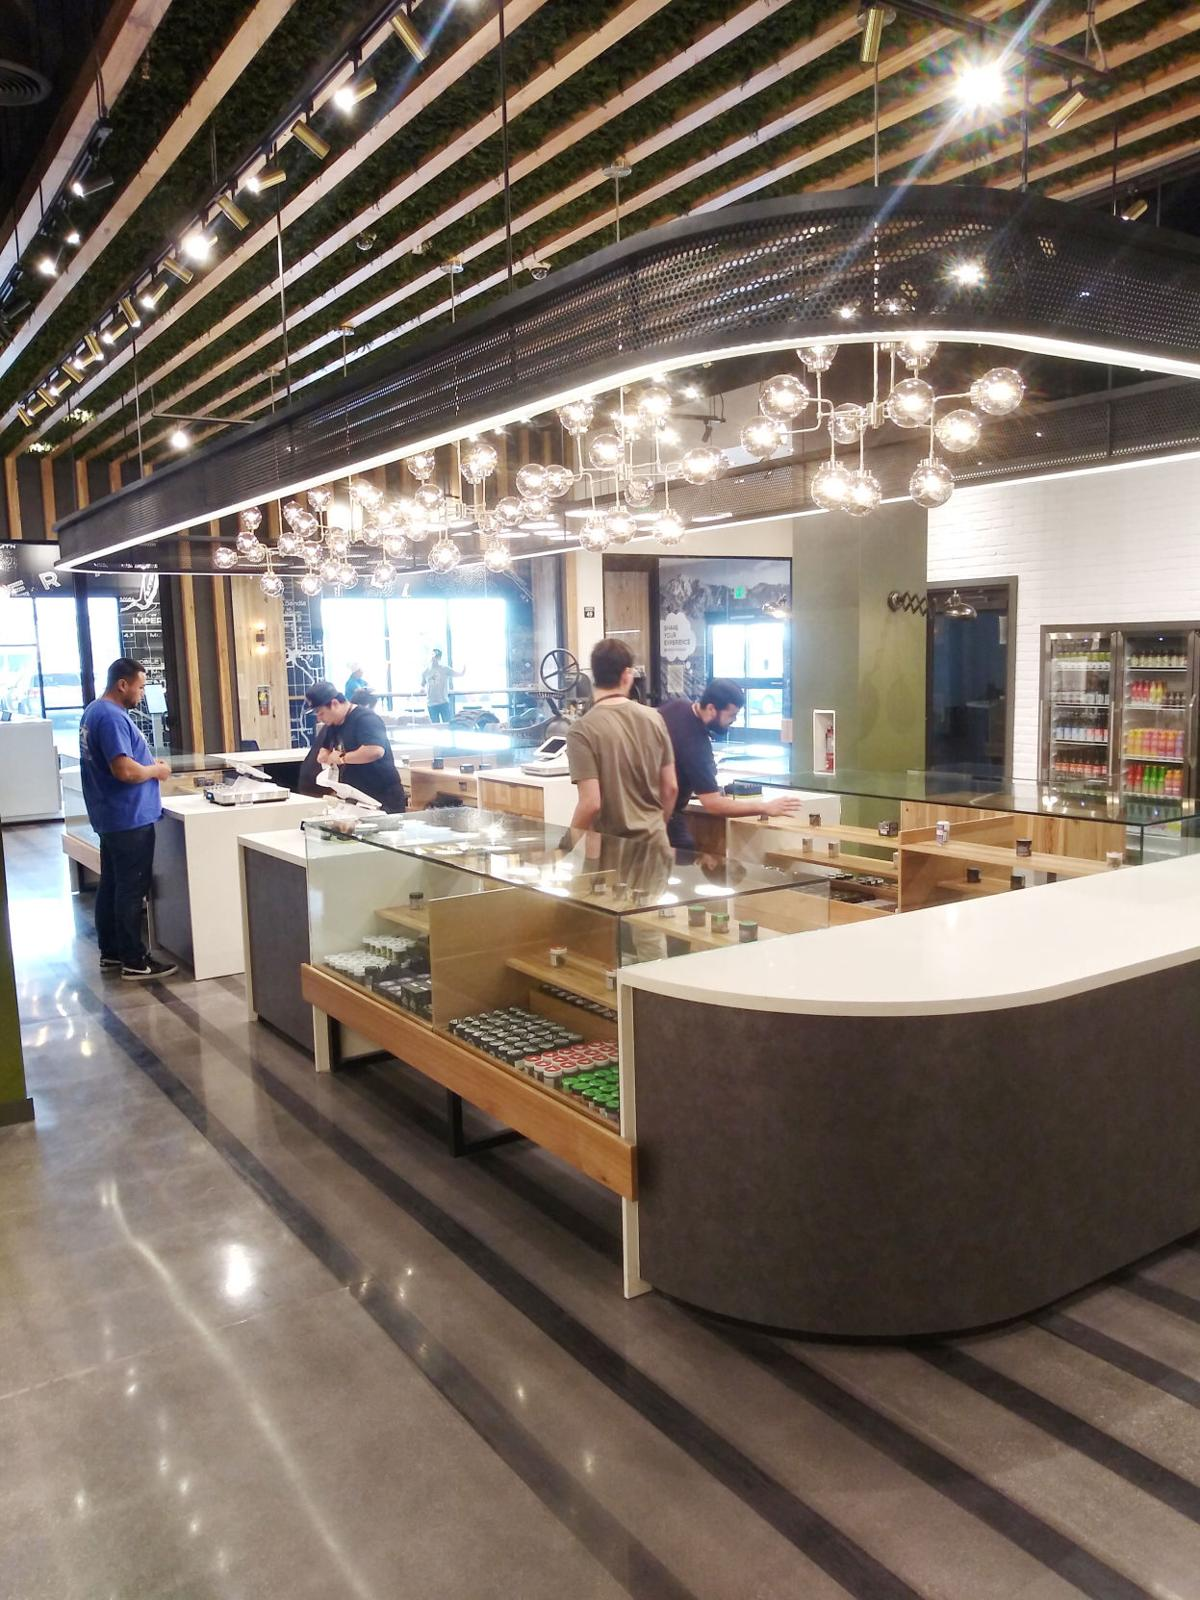 Cannabis dispensary now open for business